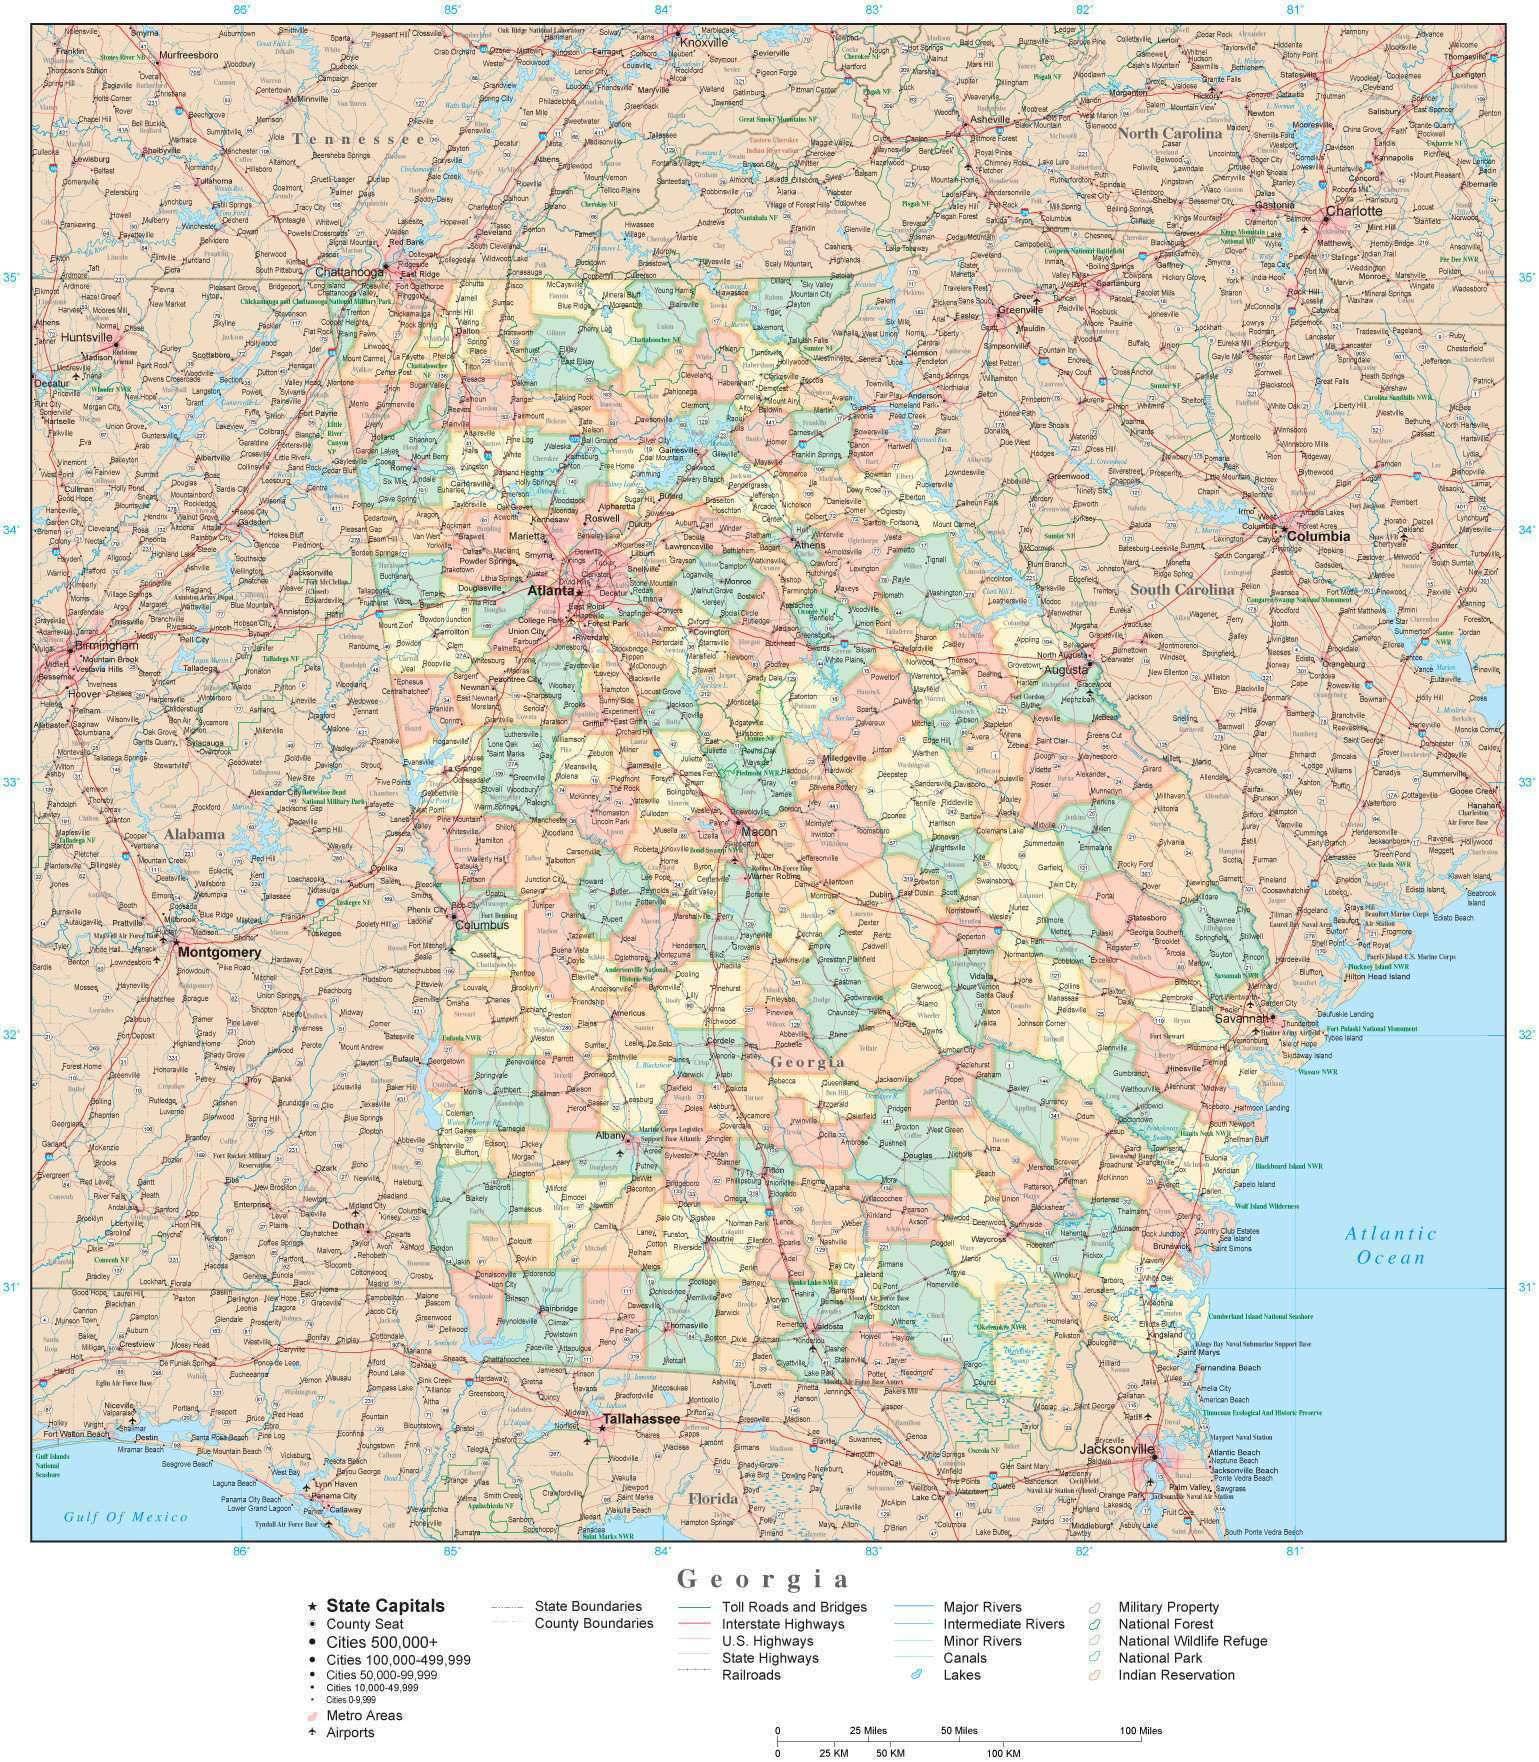 Map Of Counties In Georgia With Cities.Detailed Georgia Digital Map With Counties Cities Highways Railroads Airports National Parks And More